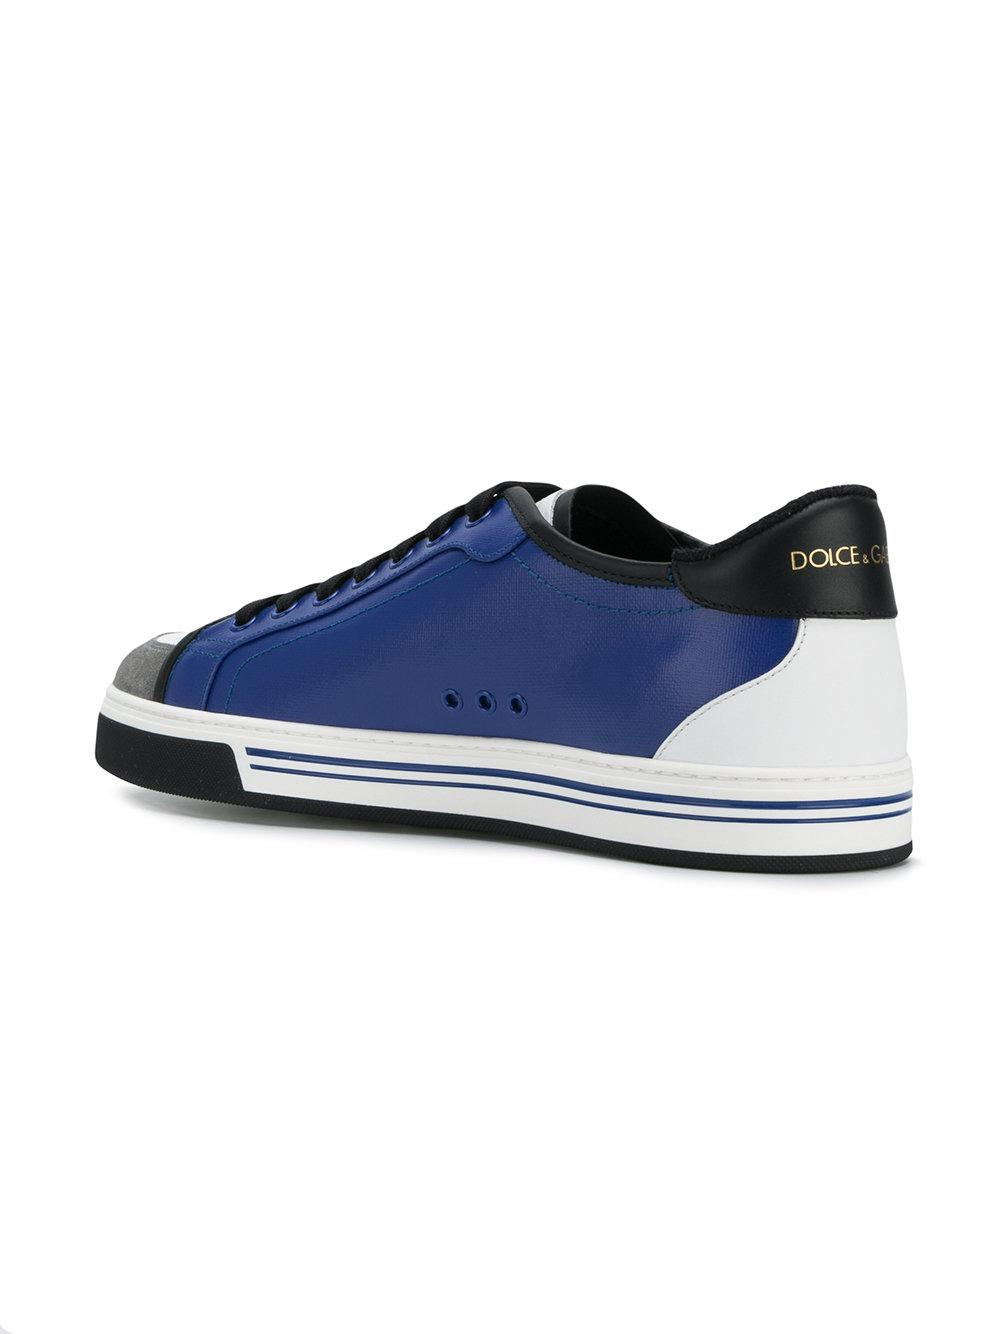 Roma sneakers - Blue Dolce & Gabbana LHjrt